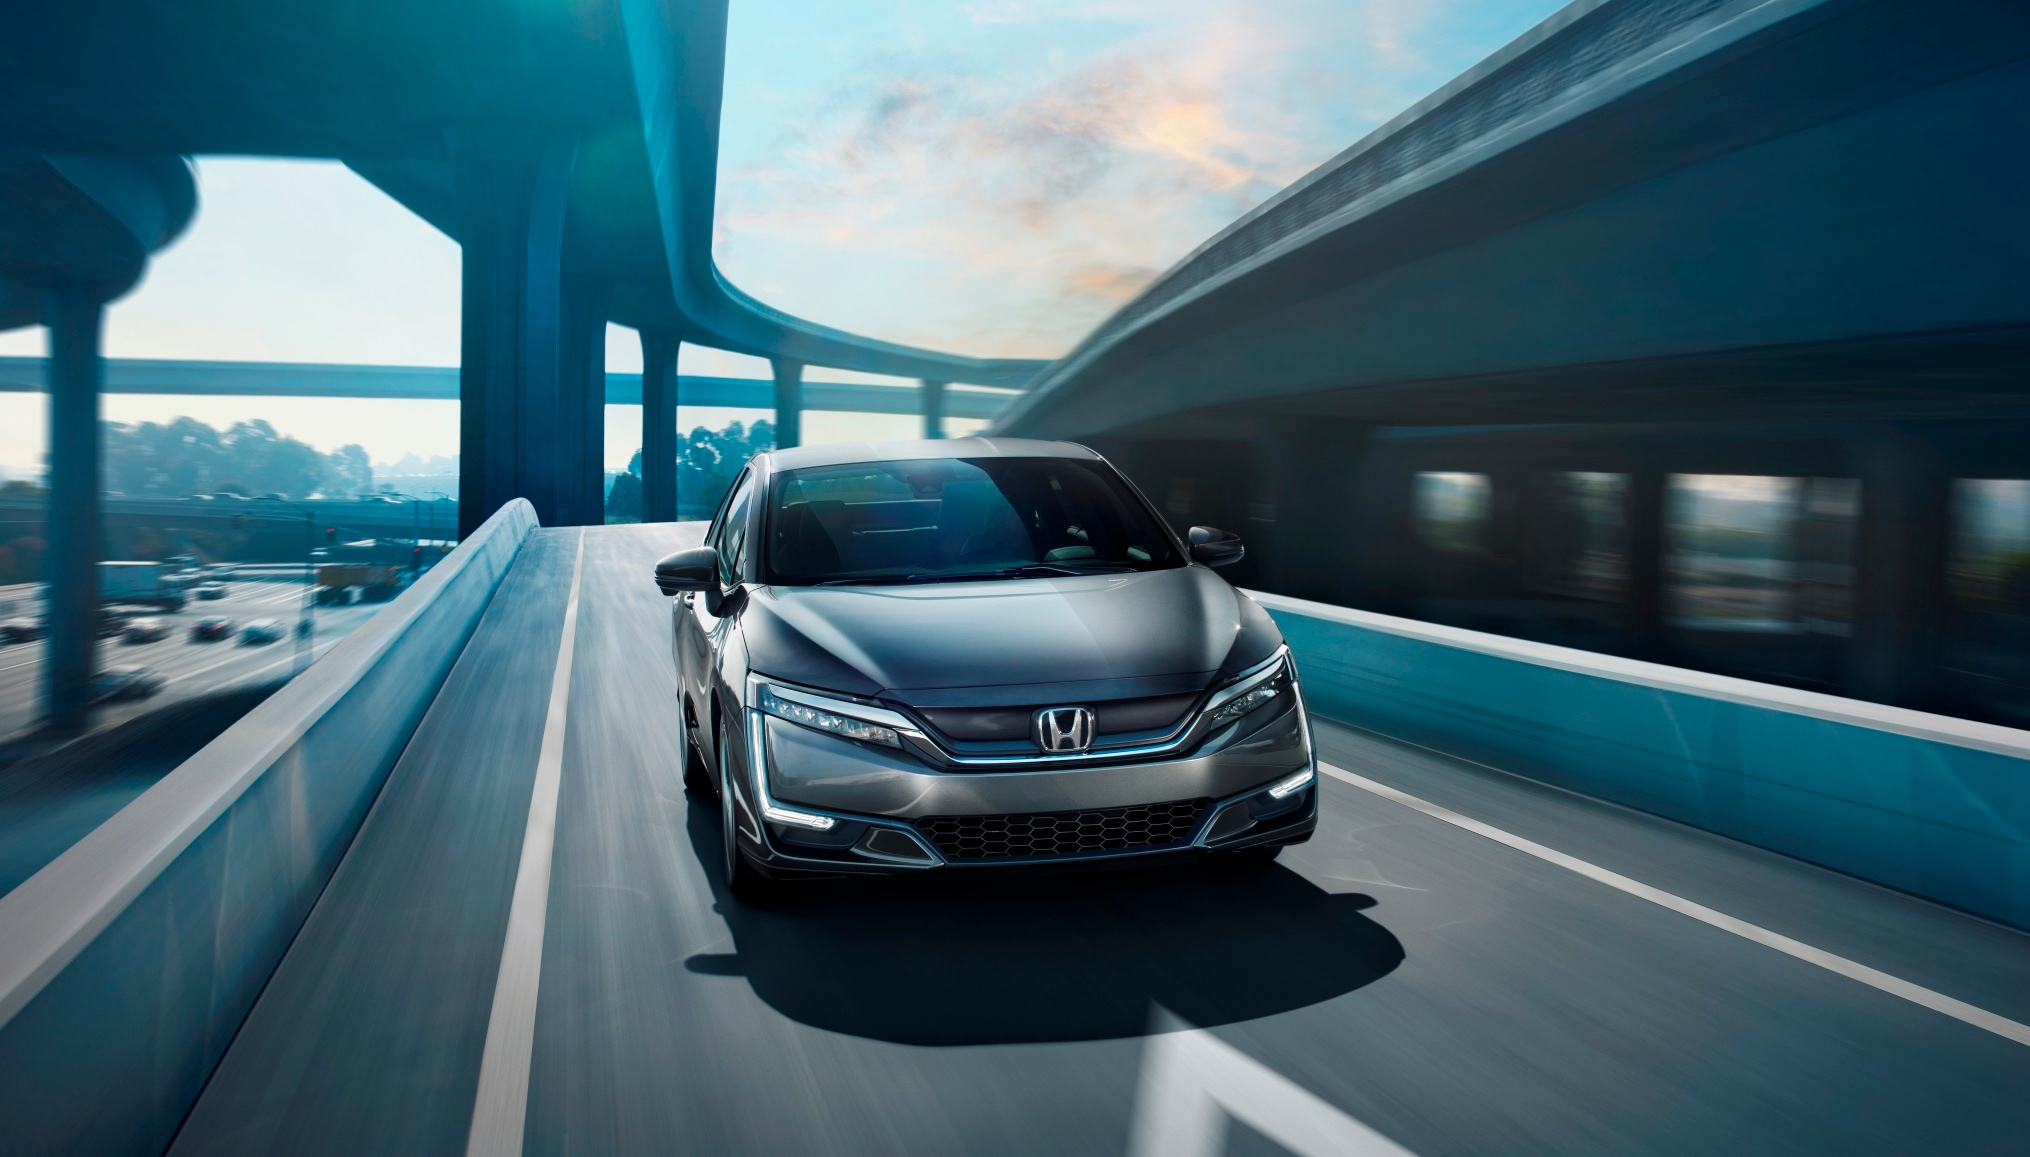 2018 Green Car of the Year® Honda Clarity